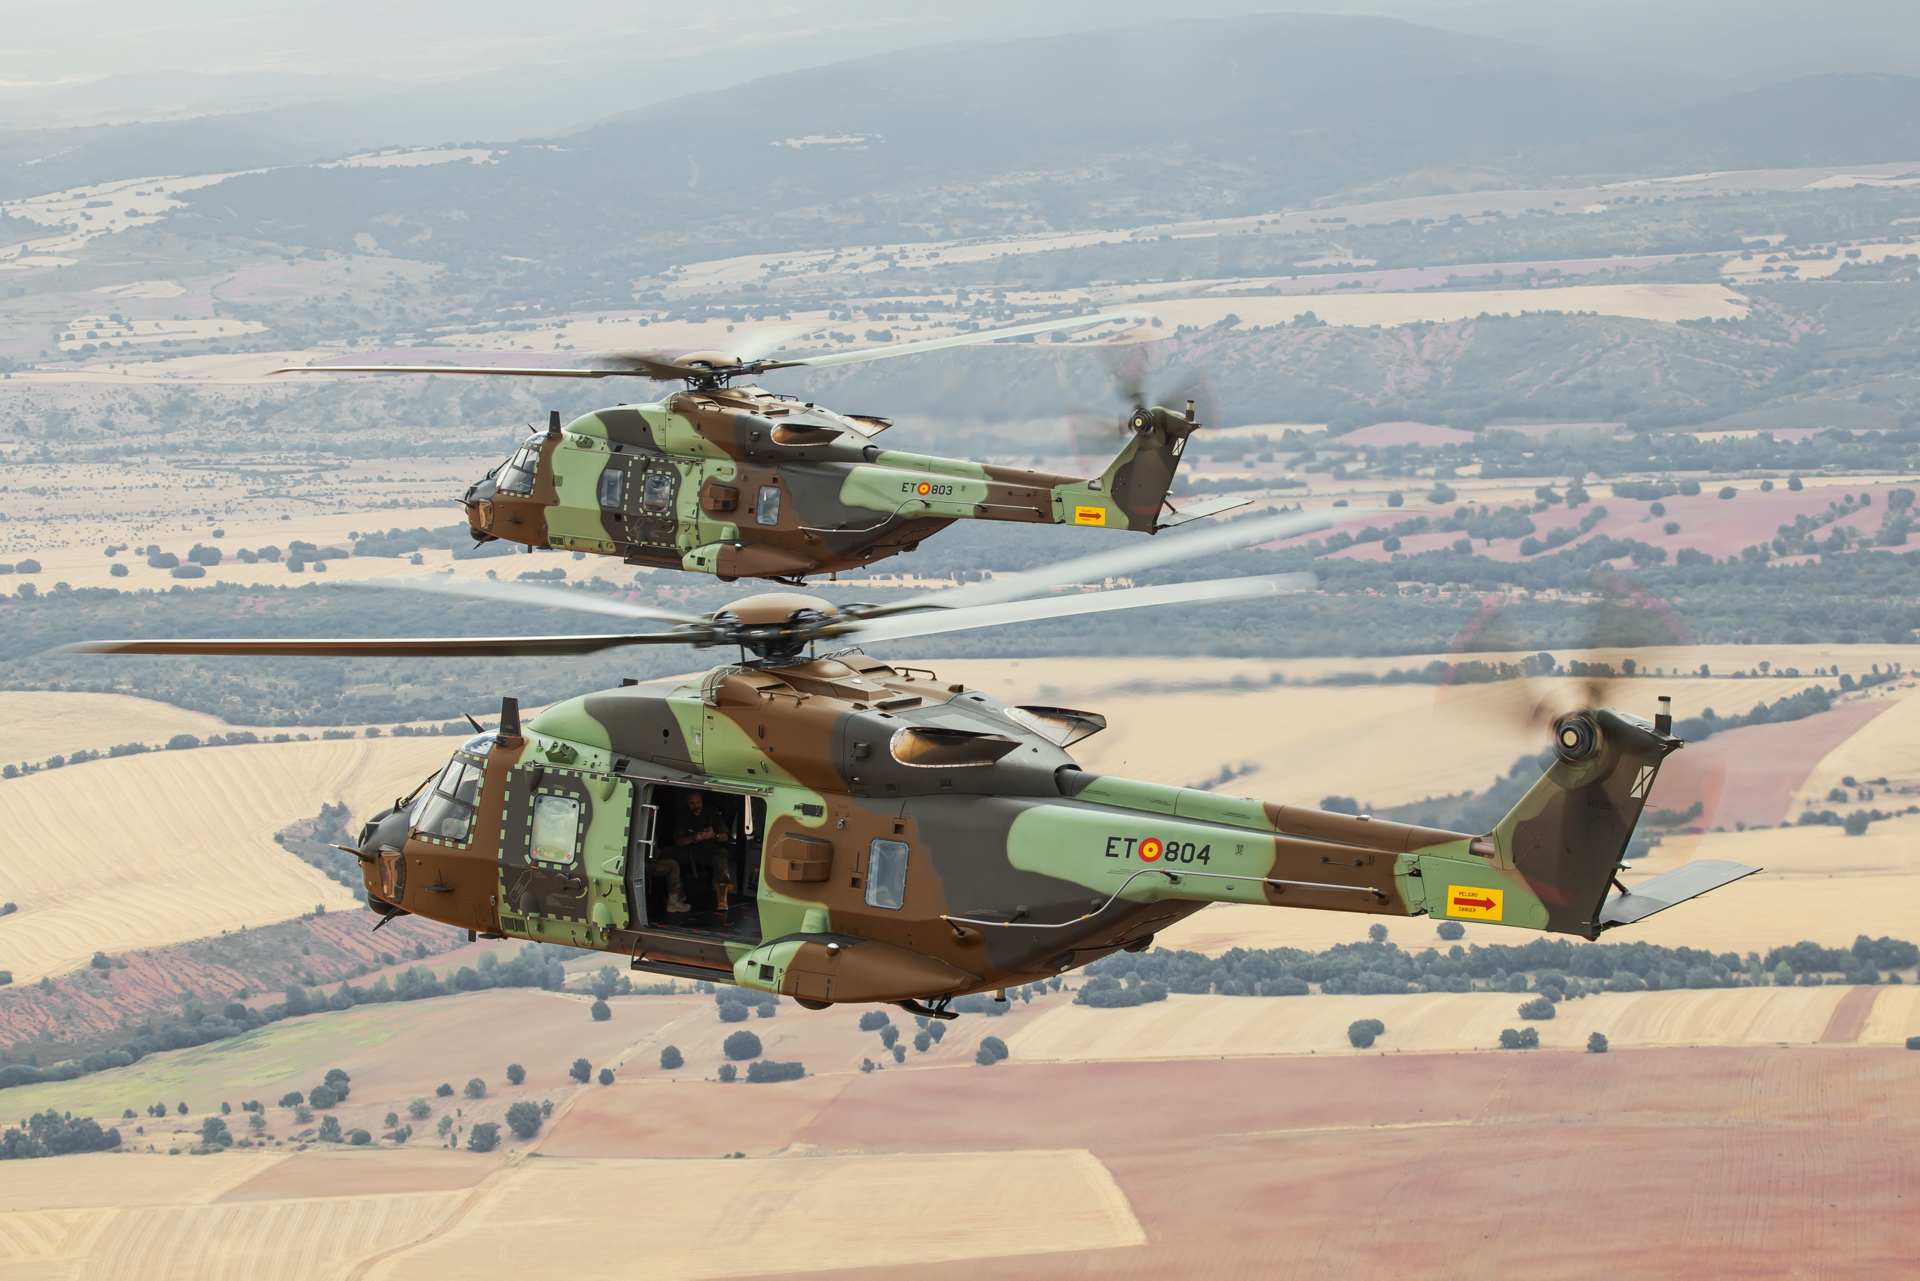 Two Spanish NH90s in the Standard 2 configuration are shown in flight.